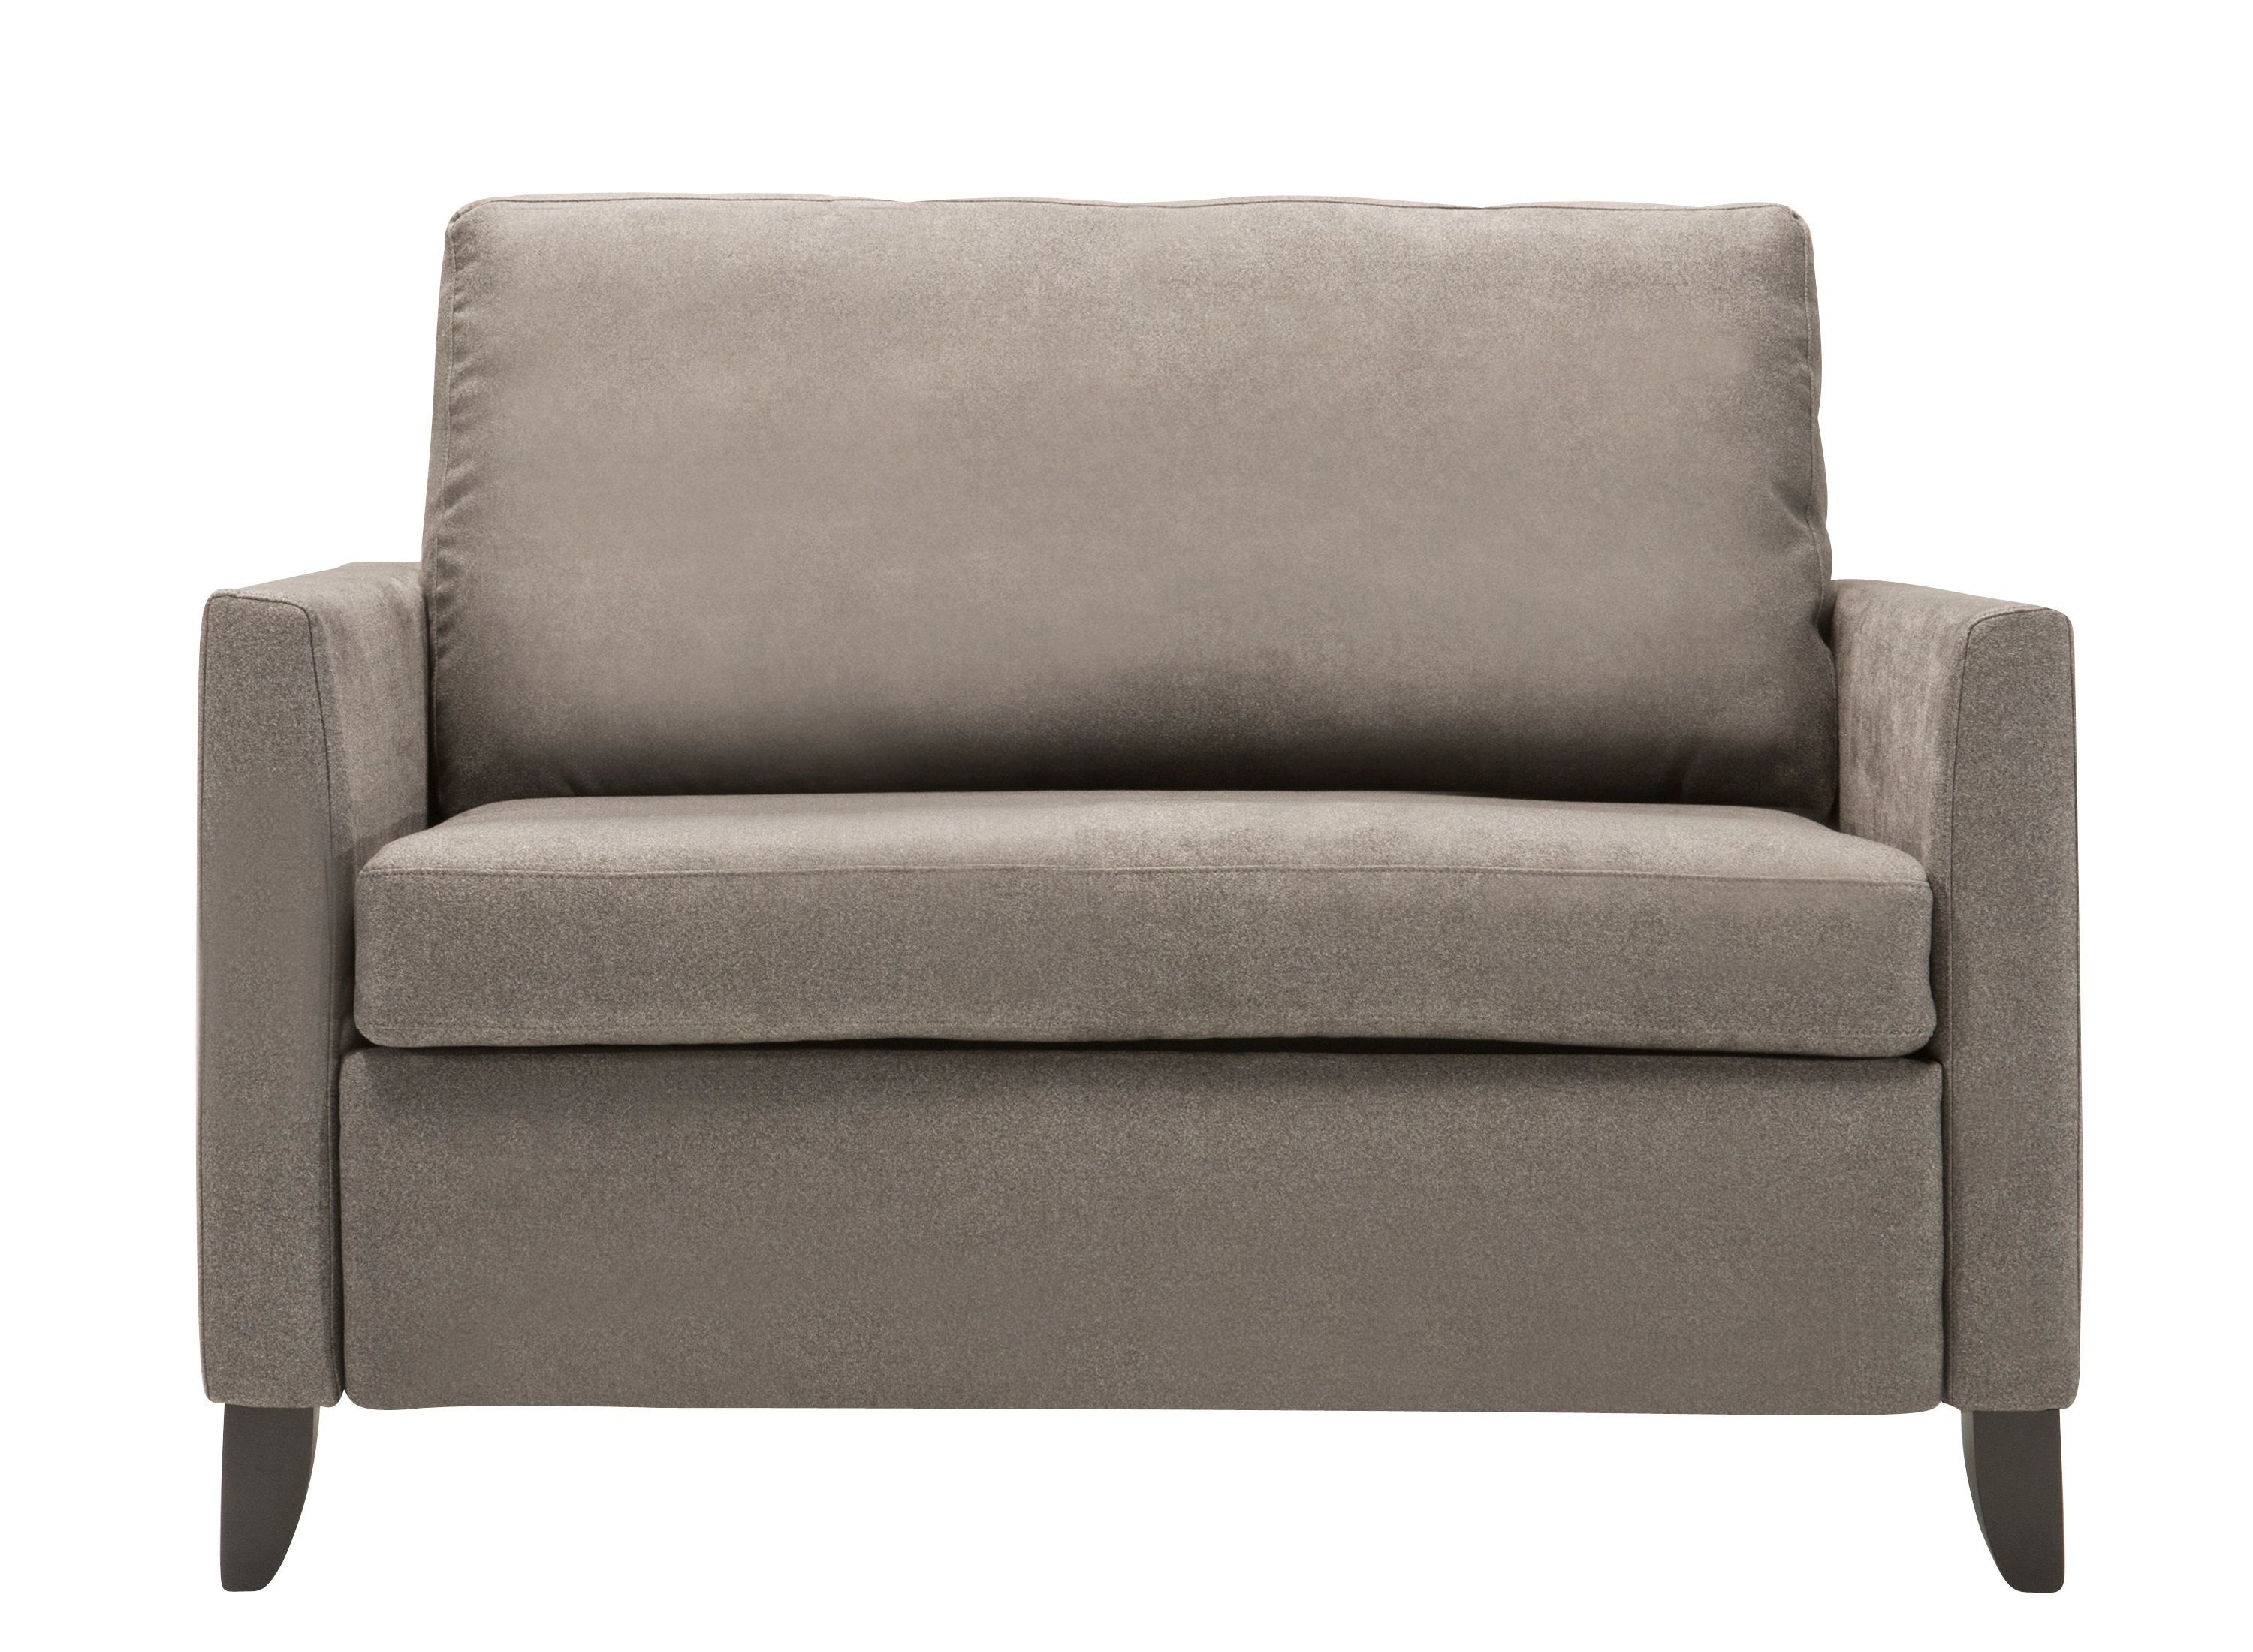 Hannah Twin Sleeper Sofa Comfort and convenience will